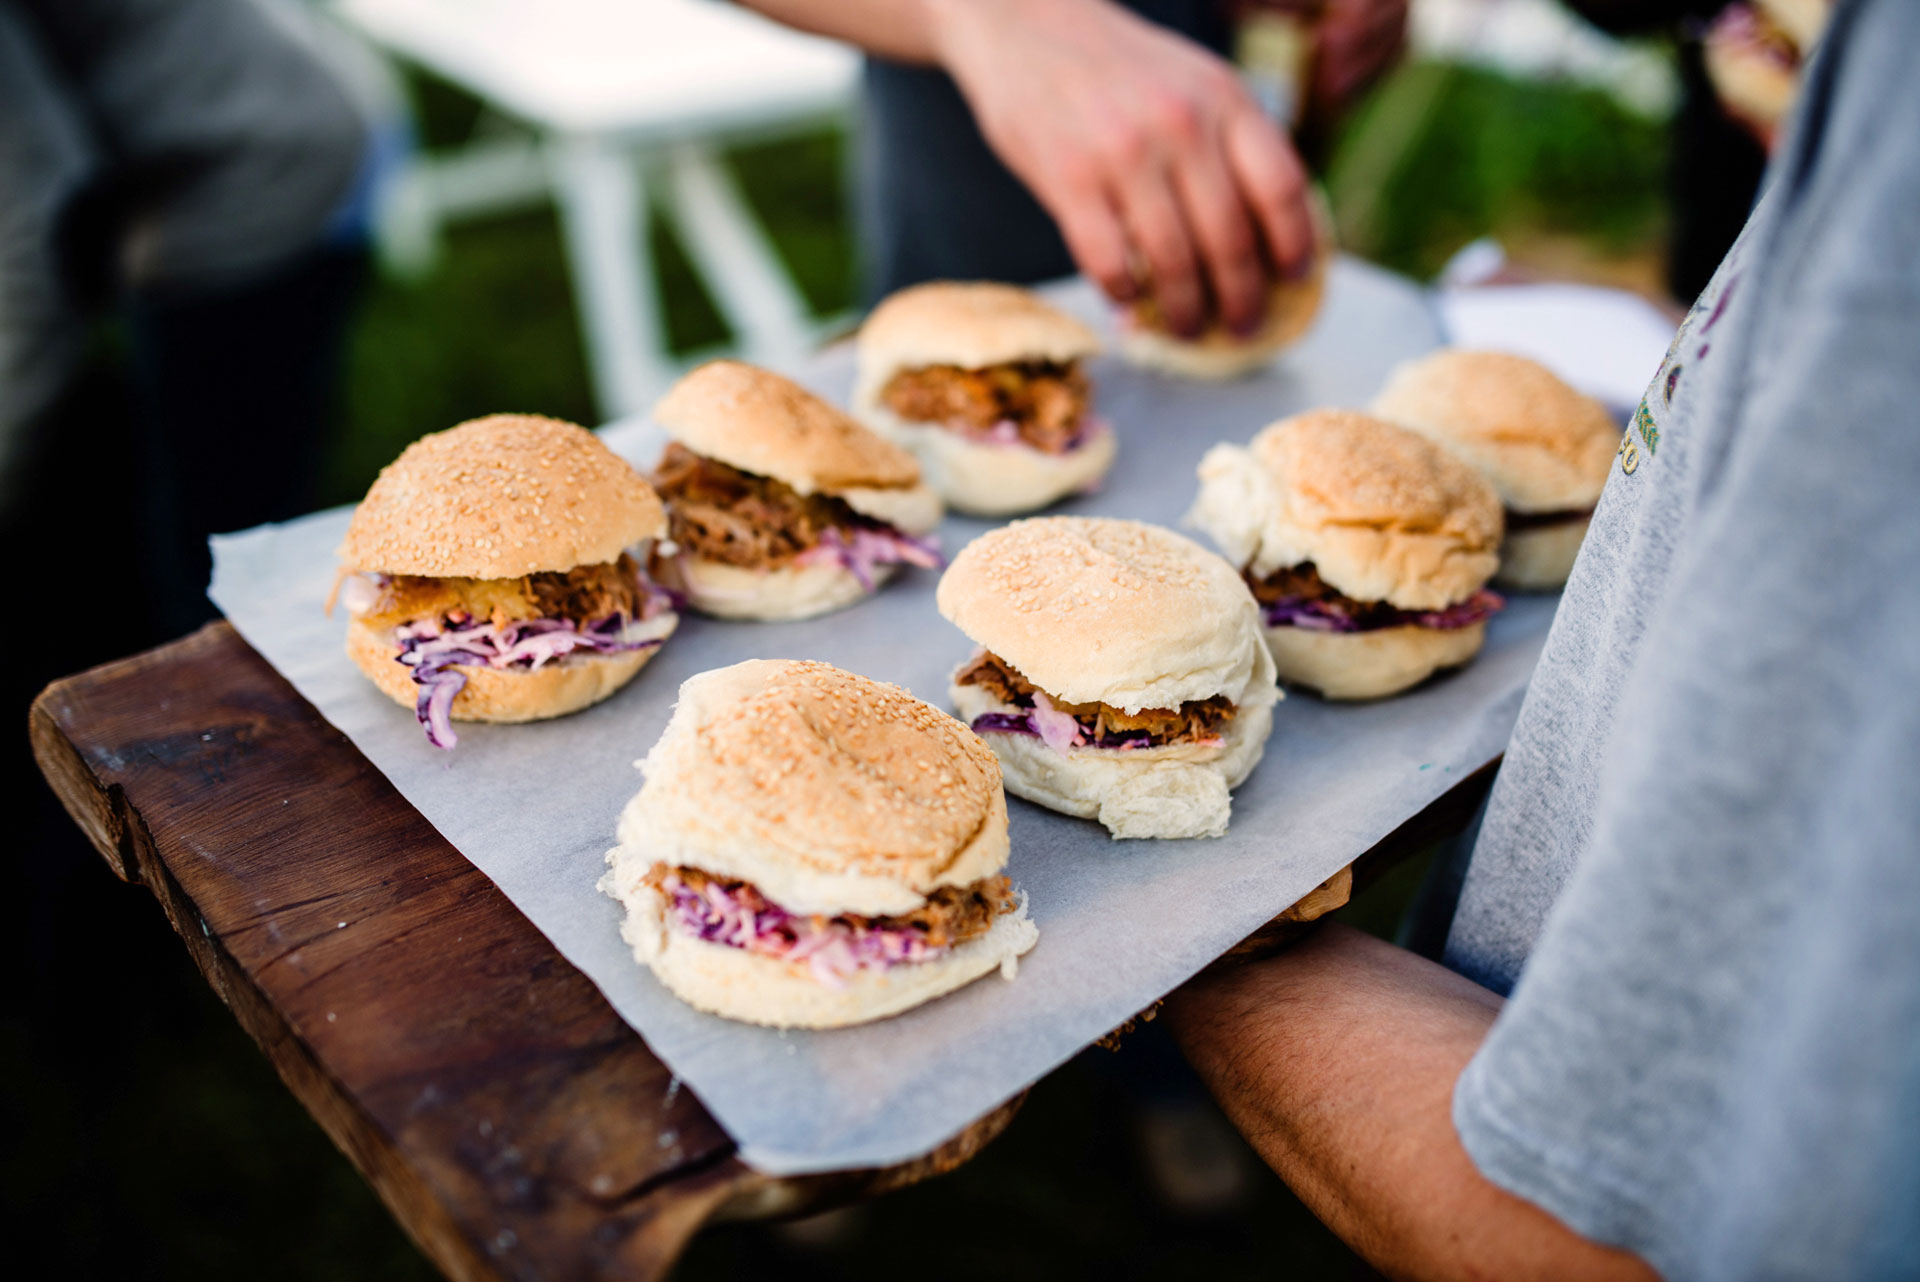 Burgers at Pennard Orchard